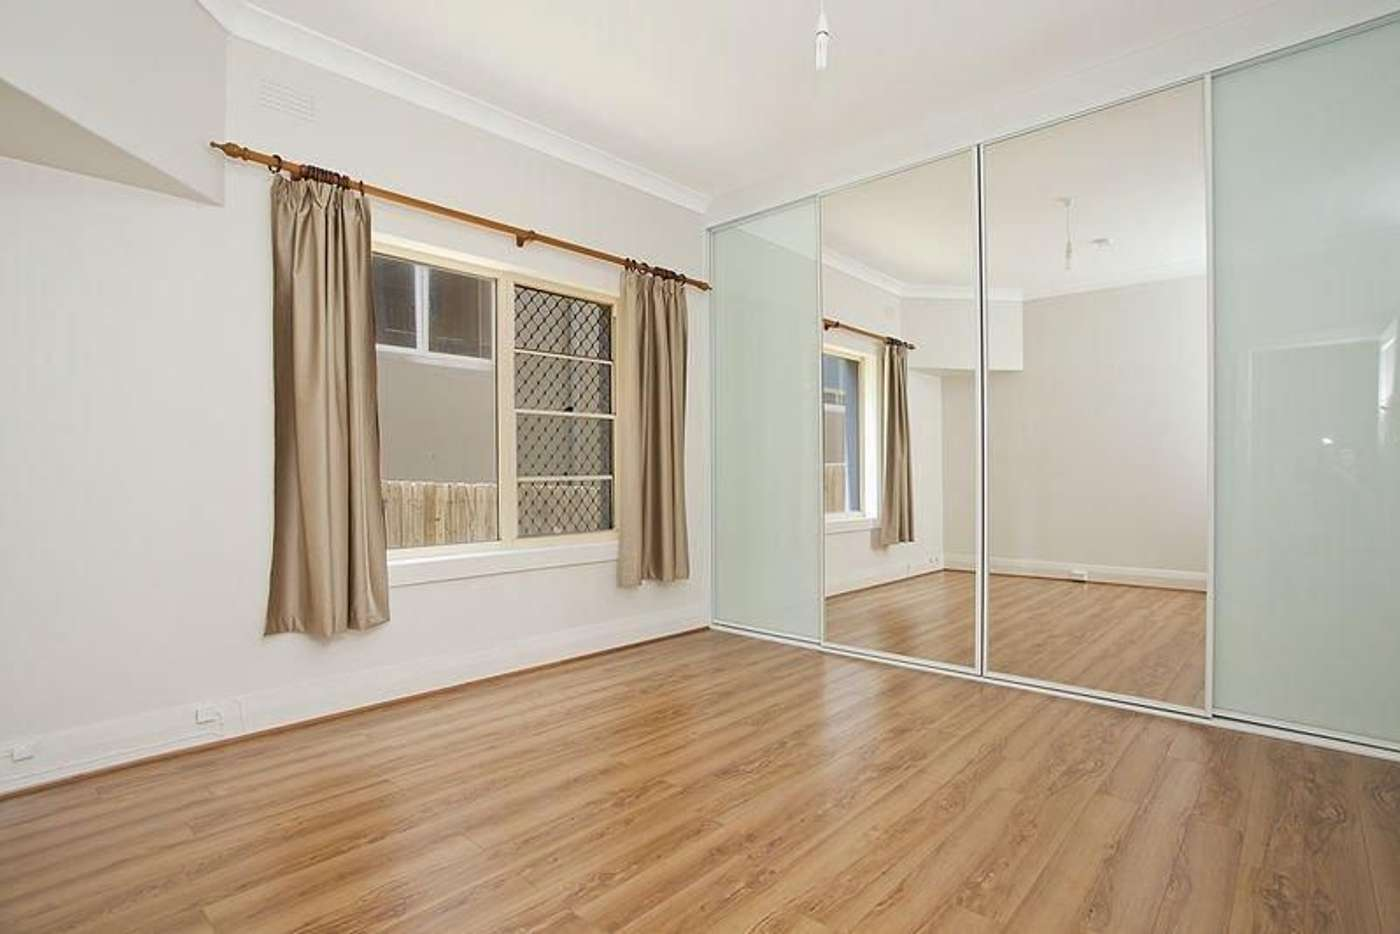 Seventh view of Homely apartment listing, 23A Banks Street, Maroubra NSW 2035